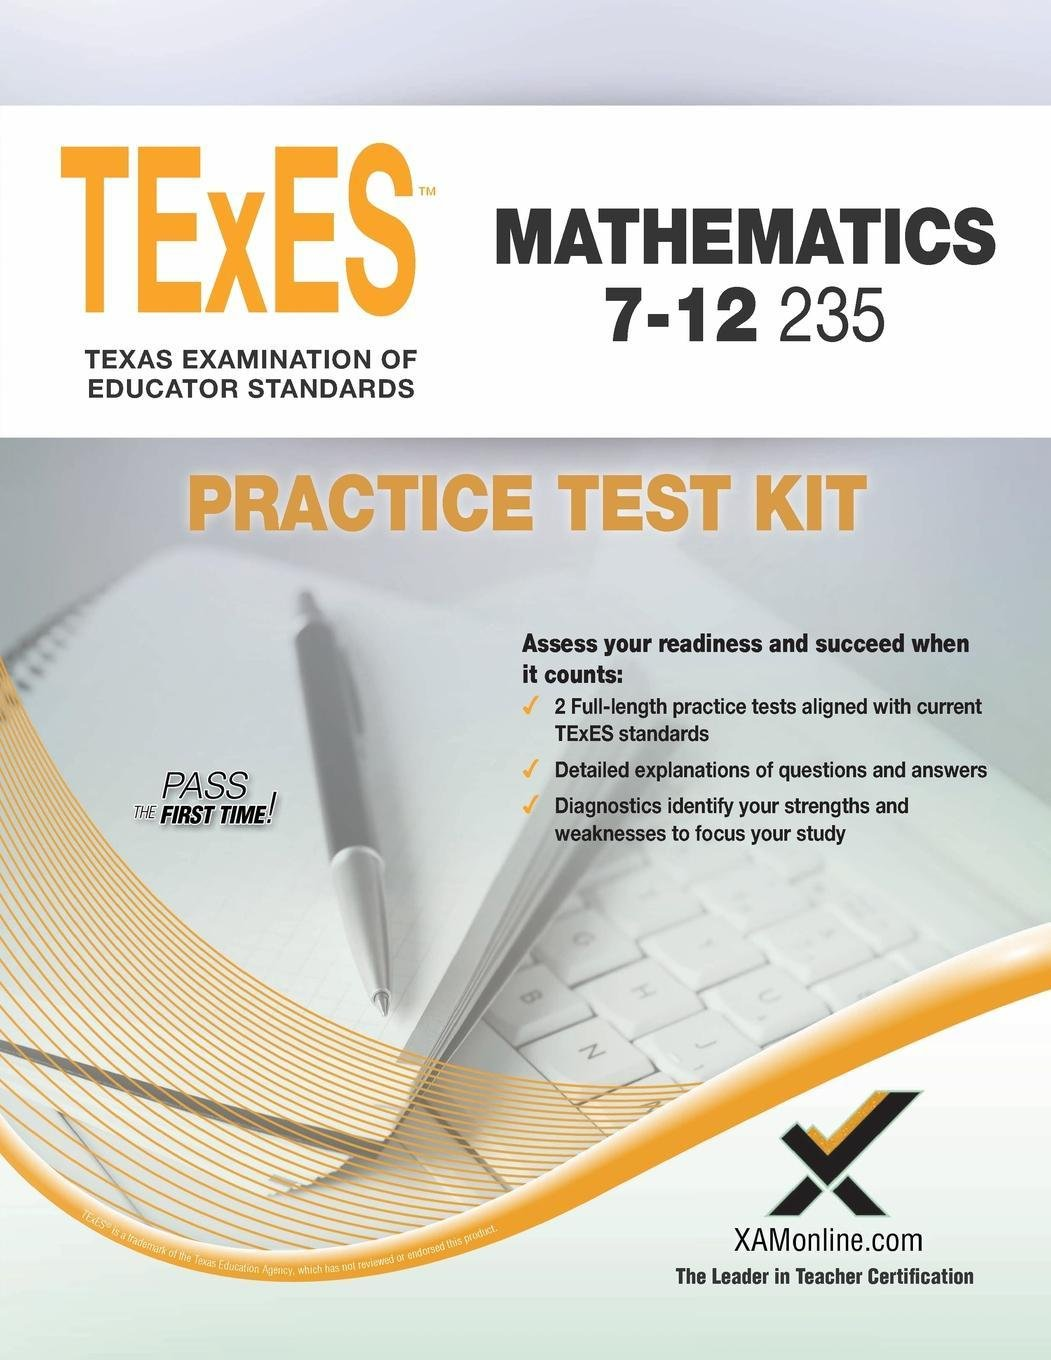 Passing the texes certification exam - Texes Mathematics 7 12 235 Practice Test Kit Sharon A Wynne 9781607873907 Amazon Com Books